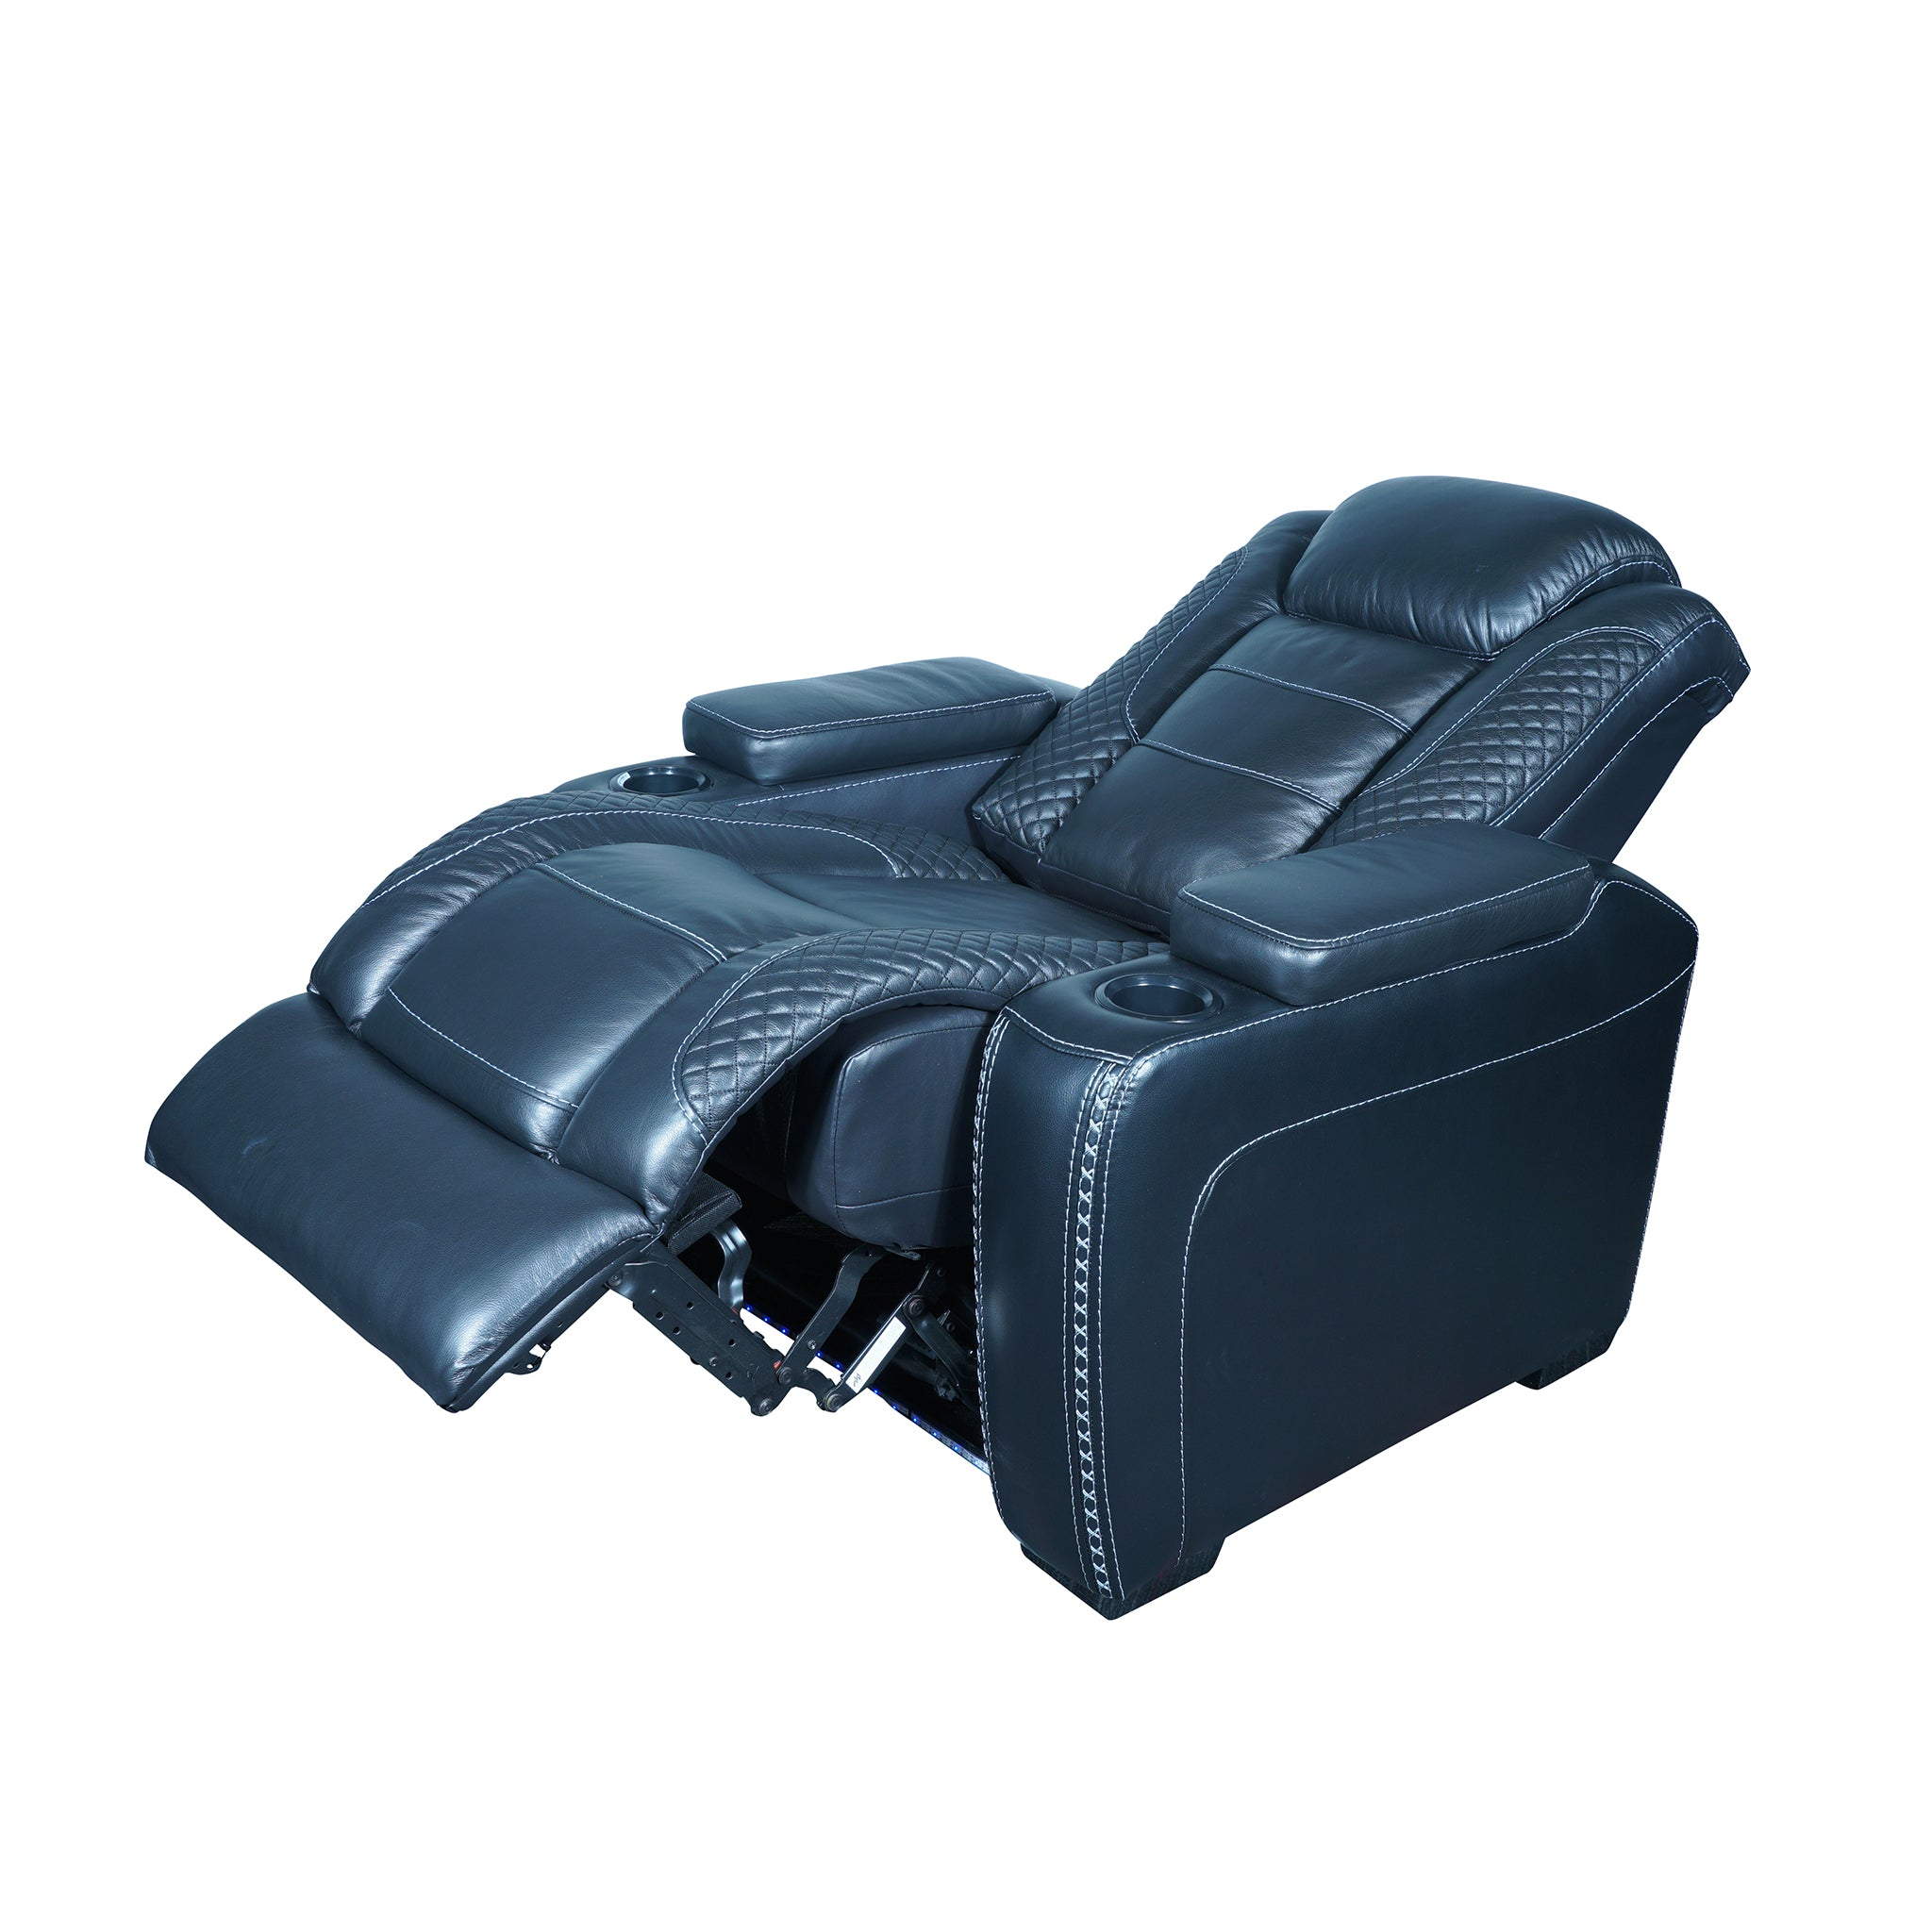 reclining armchair with adjustable headrest and usb